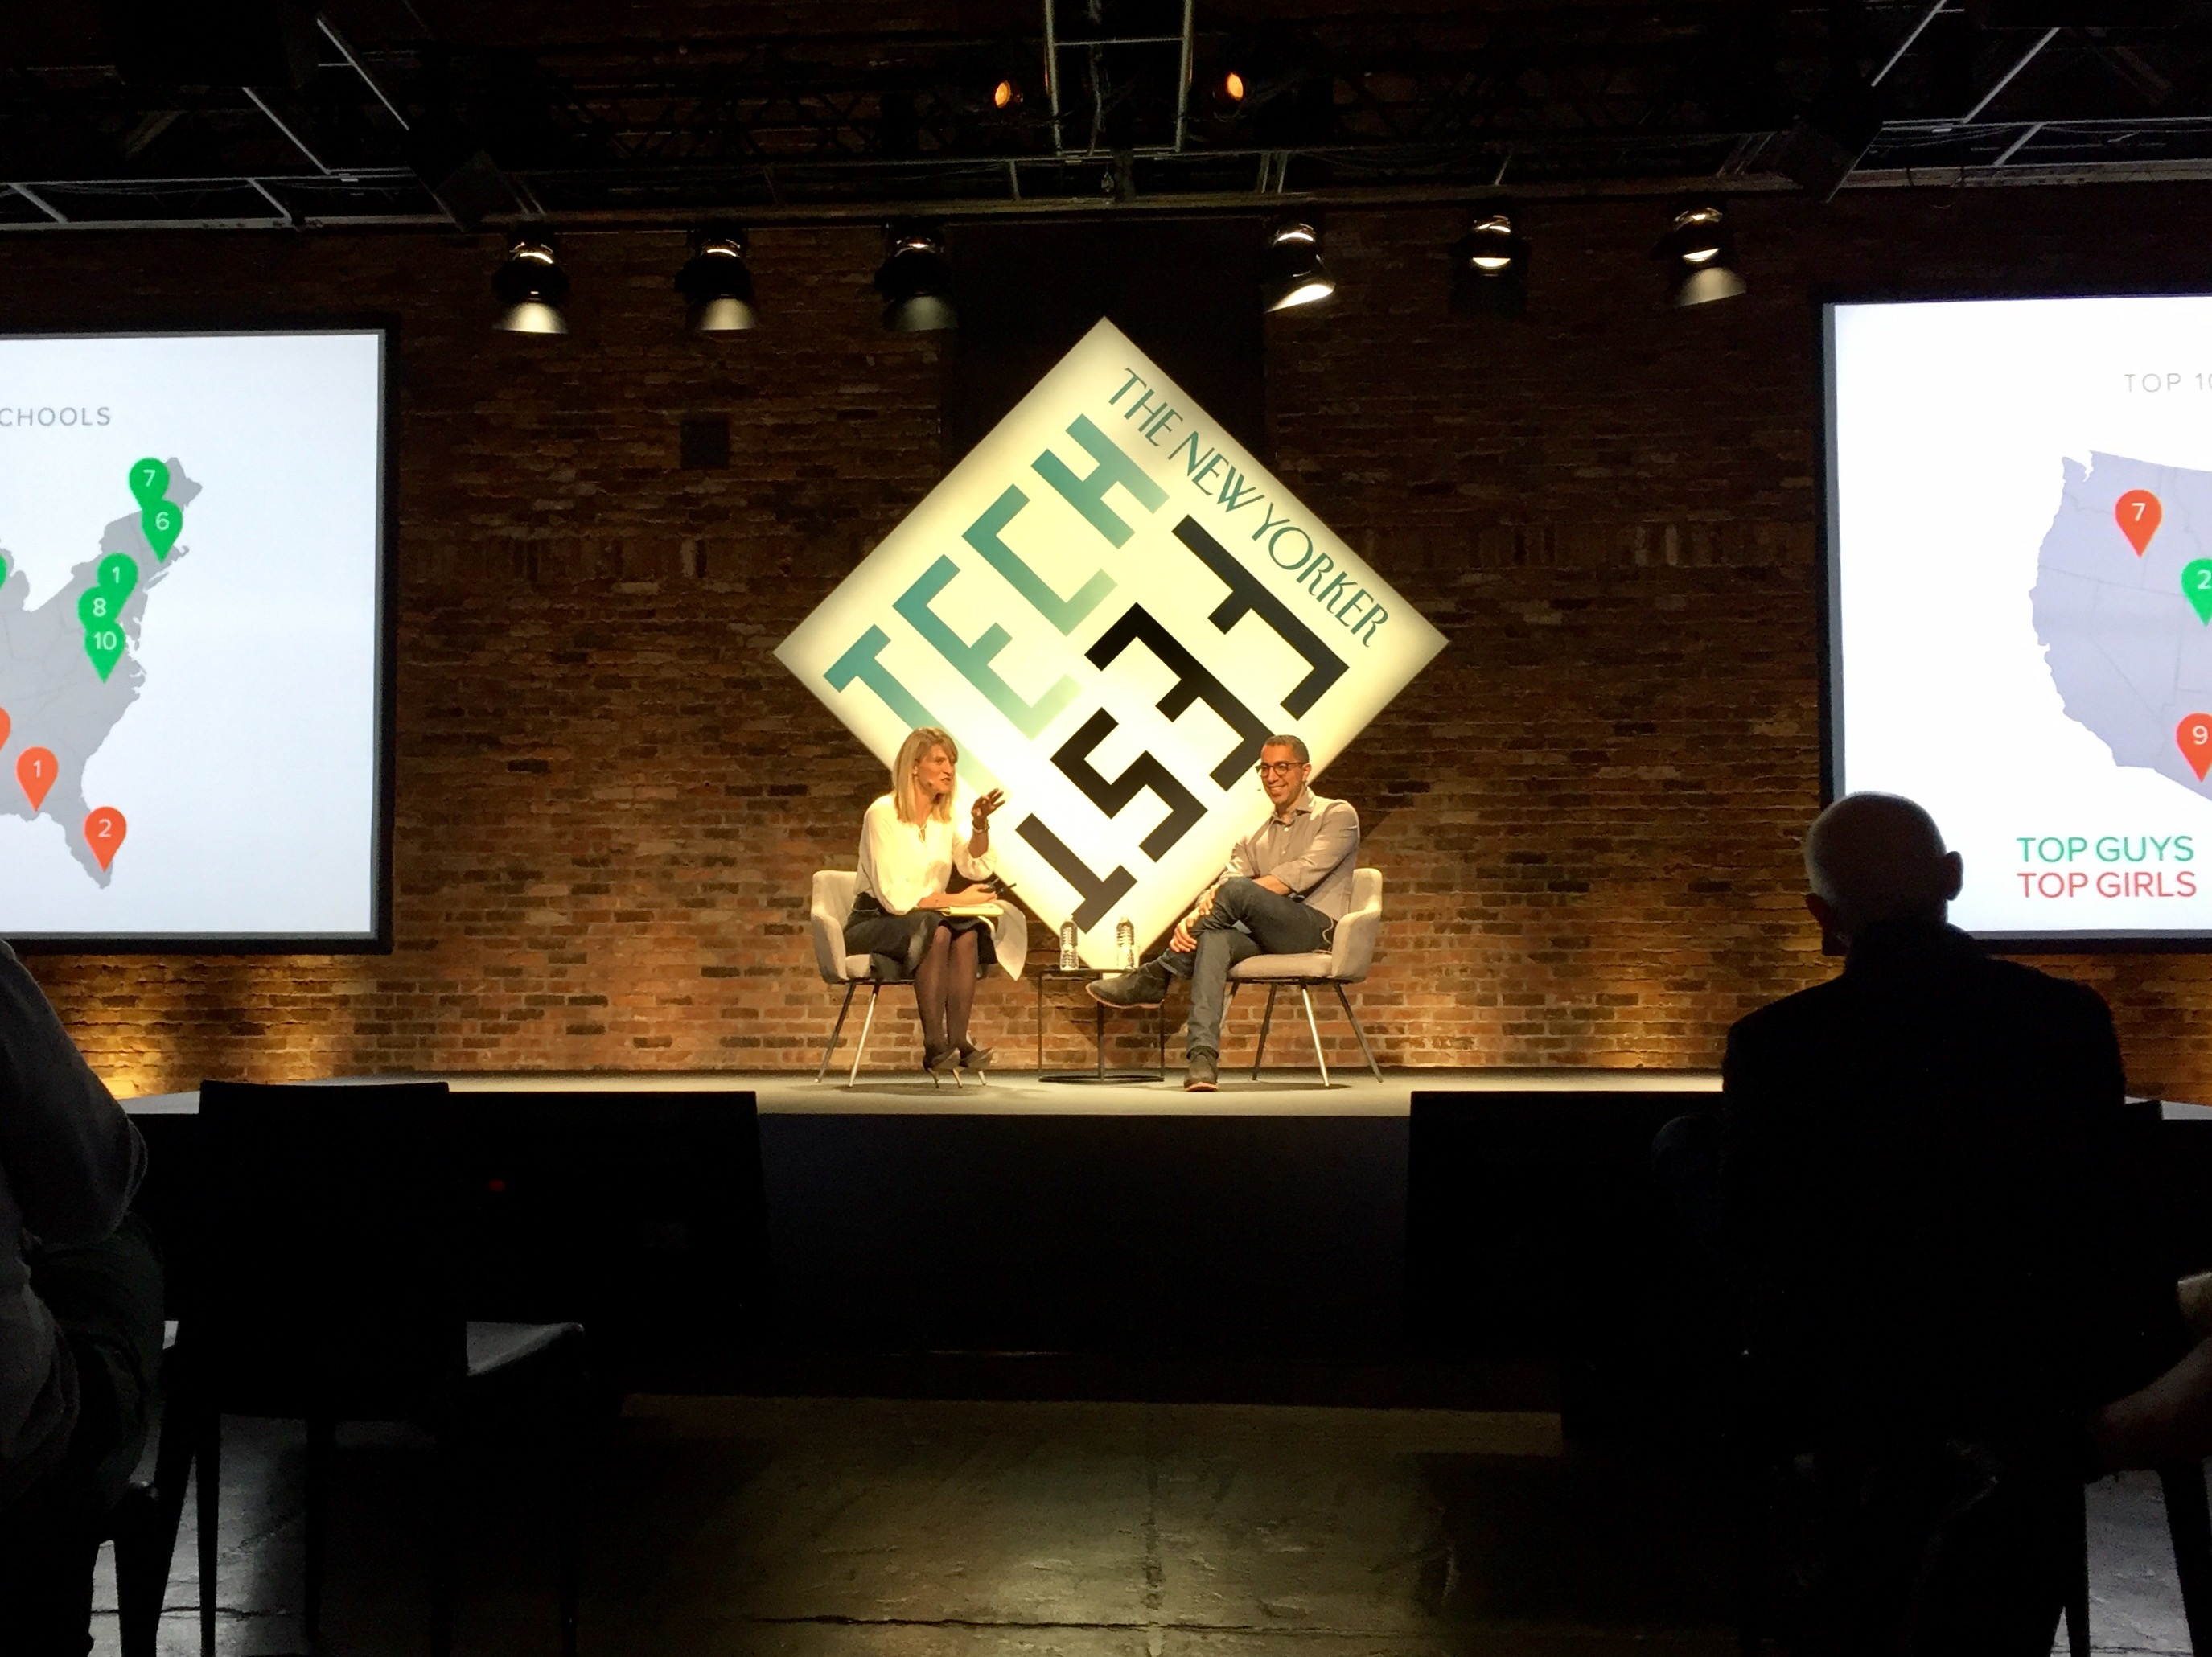 Sean Rad, CEO of Tinder, interviewed by The New Yorker's Dana Goodyear at the New Yorker's TechFest in New York City on October 7, 2016.